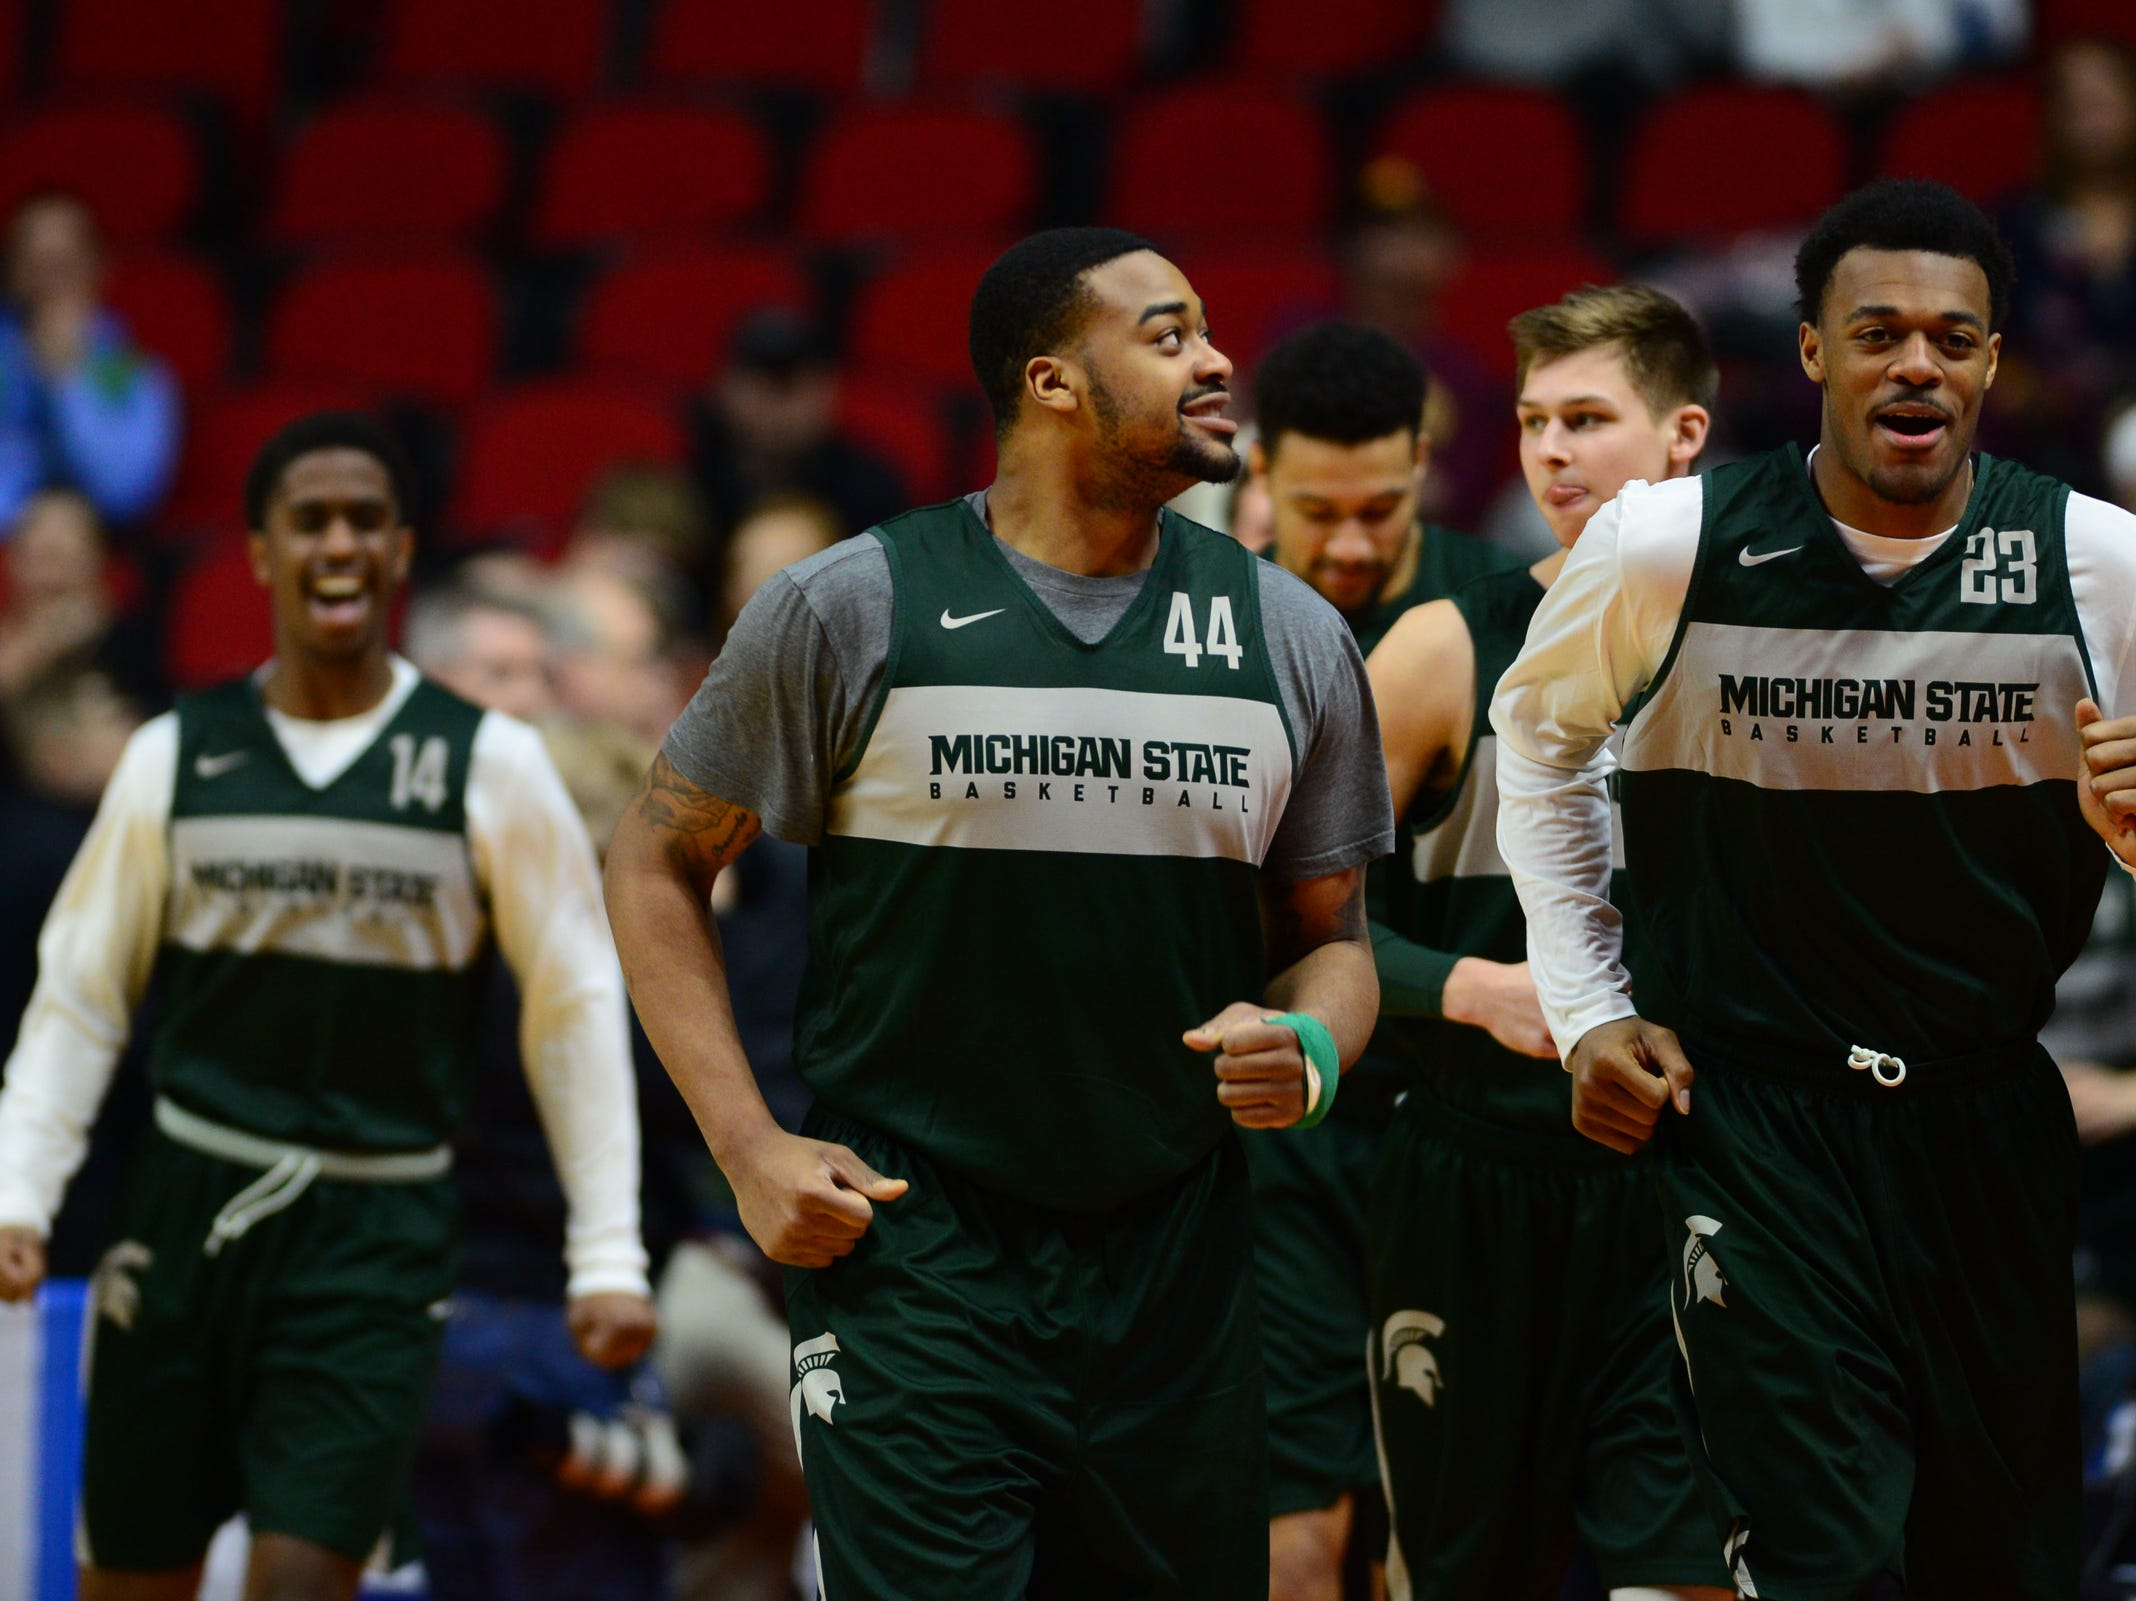 Mar 20, 2019; Des Moines, IA, USA; Michigan State Spartans forward Nick Ward (44) and Michigan State Spartans forward Xavier Tillman (23) during practice before the first round of the 2019 NCAA Tournament at Wells Fargo Arena. Mandatory Credit: Steven Branscombe-USA TODAY Sports